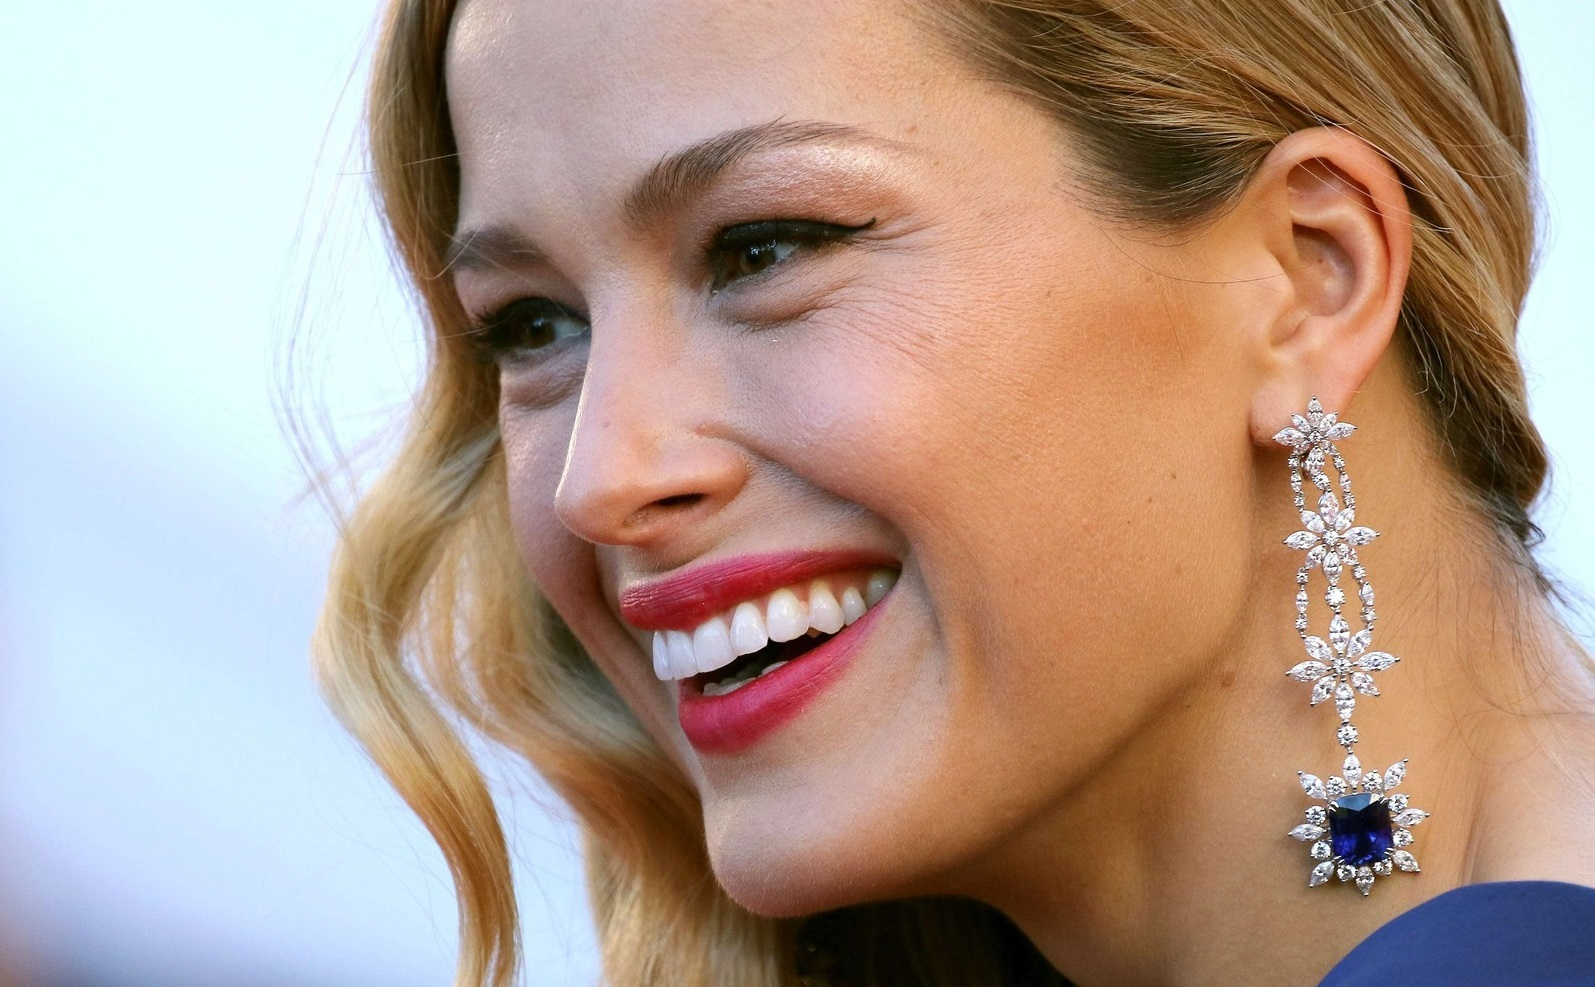 Petra Nemcova on the red carpet for the screening of the movie '120 beats per minute' ('120 battements par minute' ) on May 20th 2017, during the 70th Cannes Film Festival.//HAEDRICHJM_237JMH/Credit:Jean-Marc Haedrich/SIPA/1705211142, Image: 333041660, License: Rights-managed, Restrictions: , Model Release: no, Credit line: Jean-Marc Haedrich / Sipa Press / Profimedia